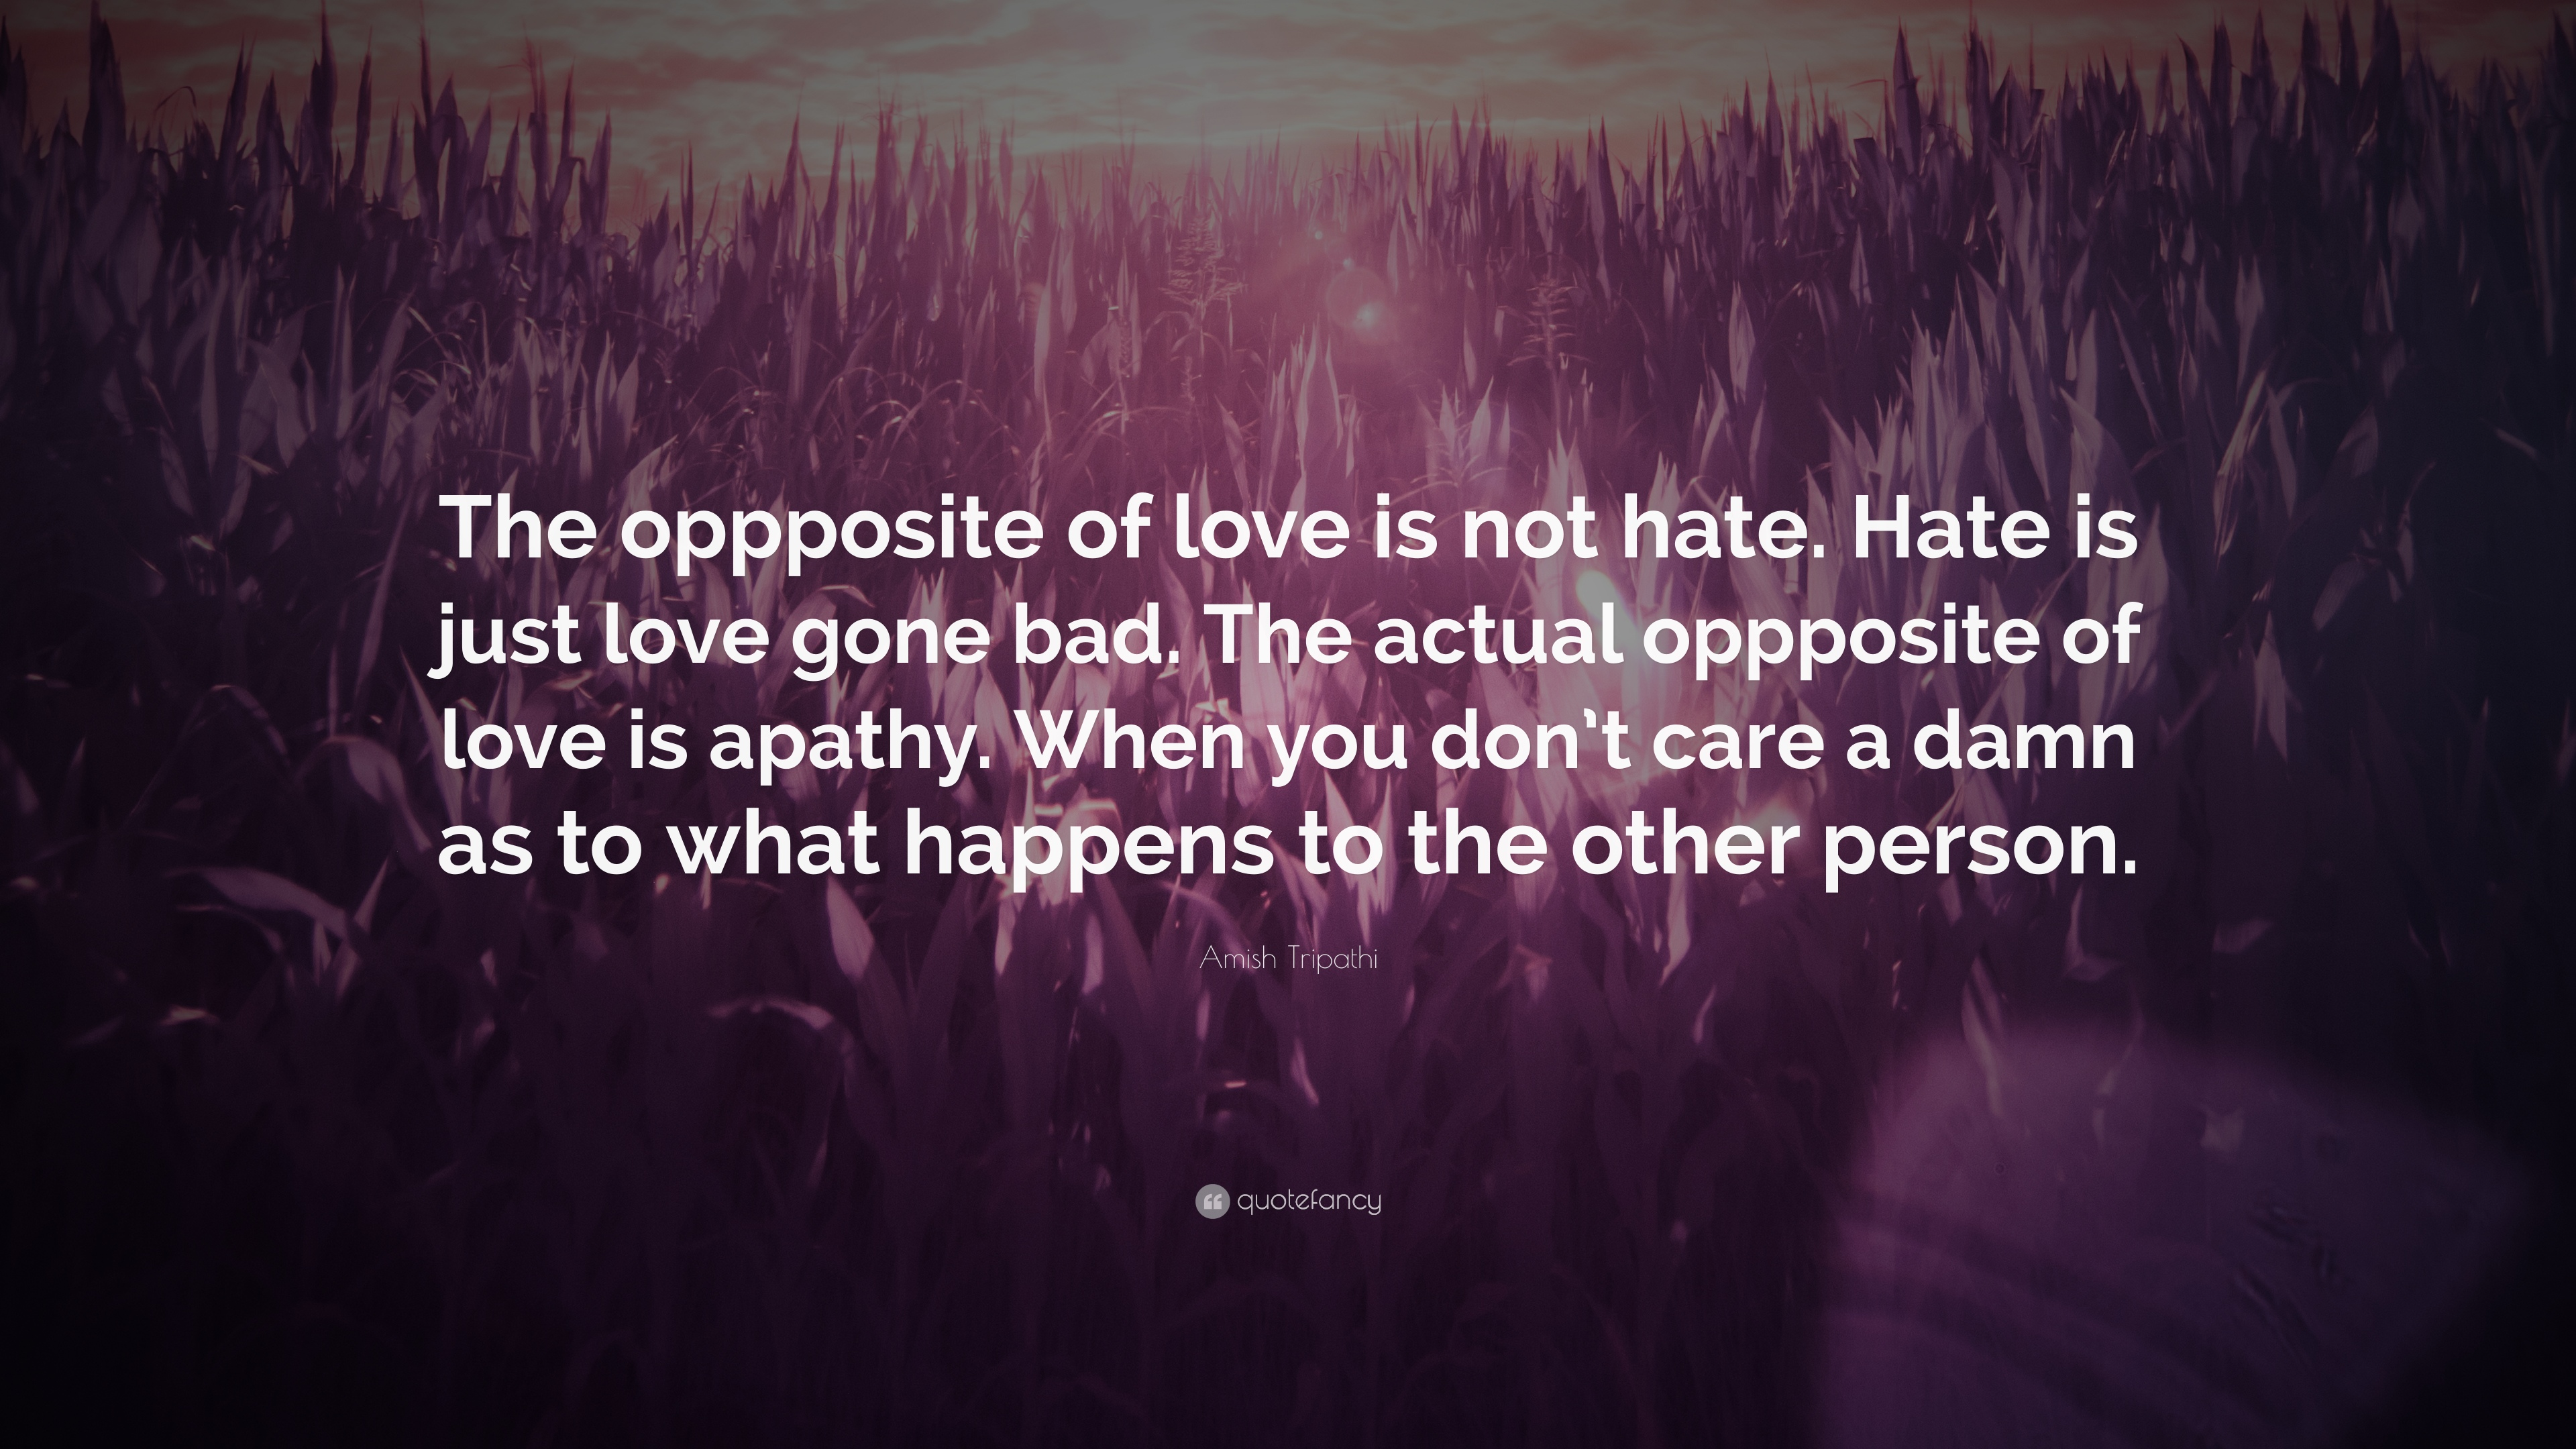 Amish Tripathi Quote The Oppposite Of Love Is Not Hate Hate Is